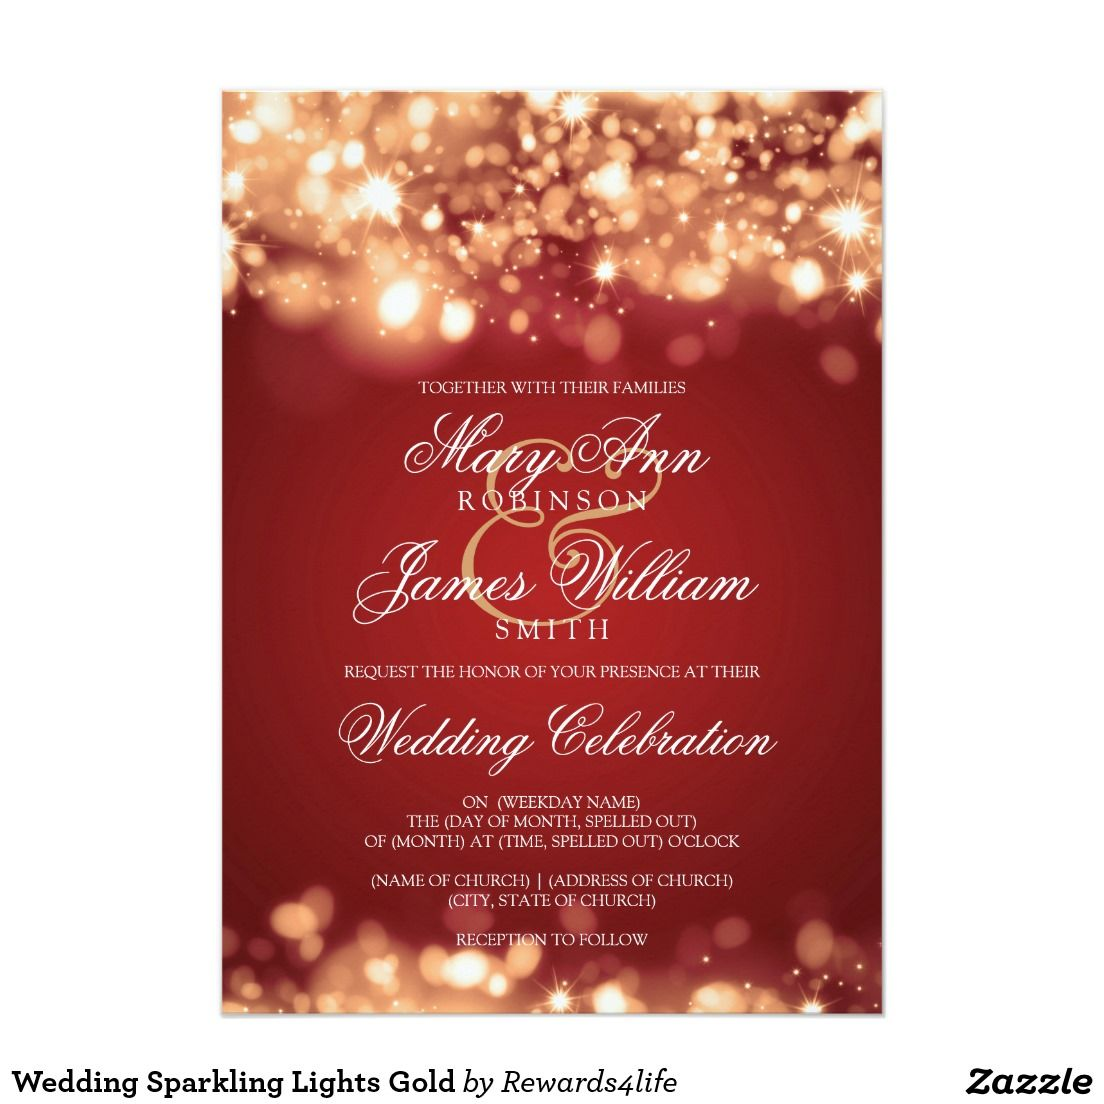 Greetings By Costco Productsuites Wedding Ideas Planning